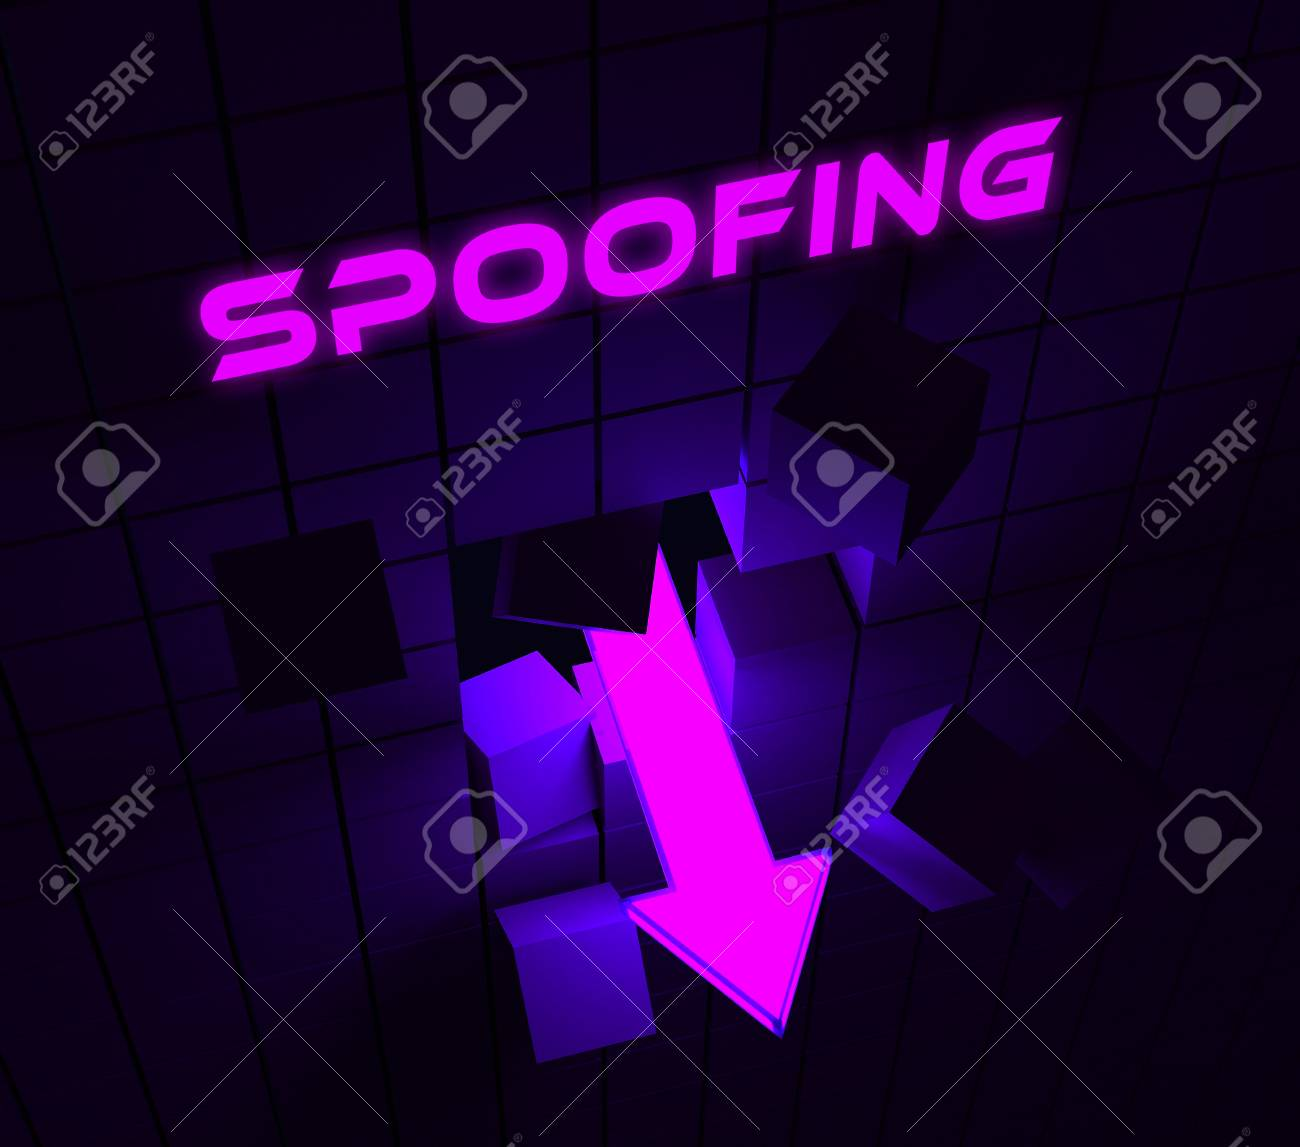 Spoofing Attack Cyber Crime Hoax 3d Rendering Means Website Spoof